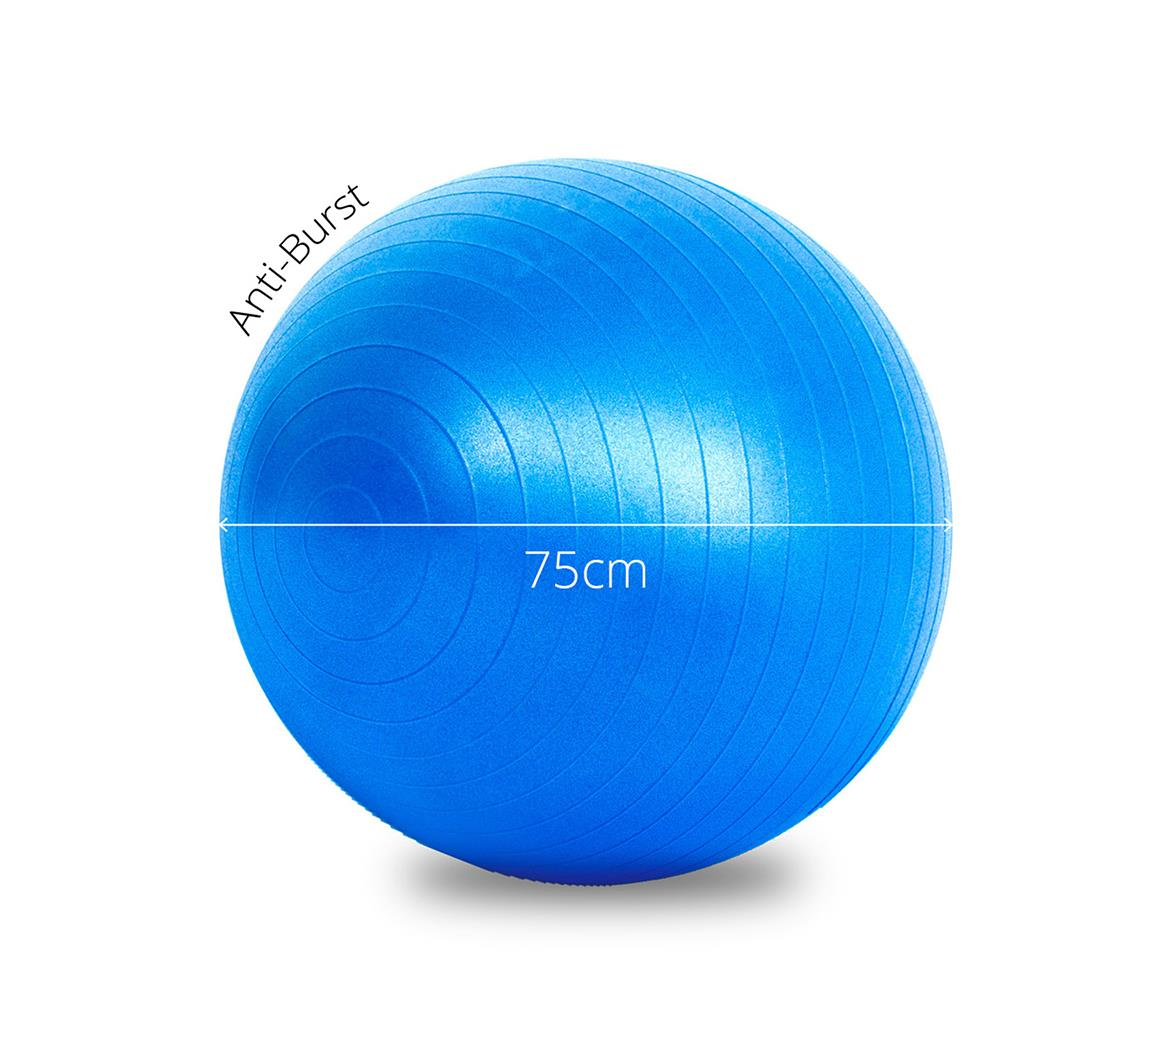 Lifespan Fitness Ball 75cm